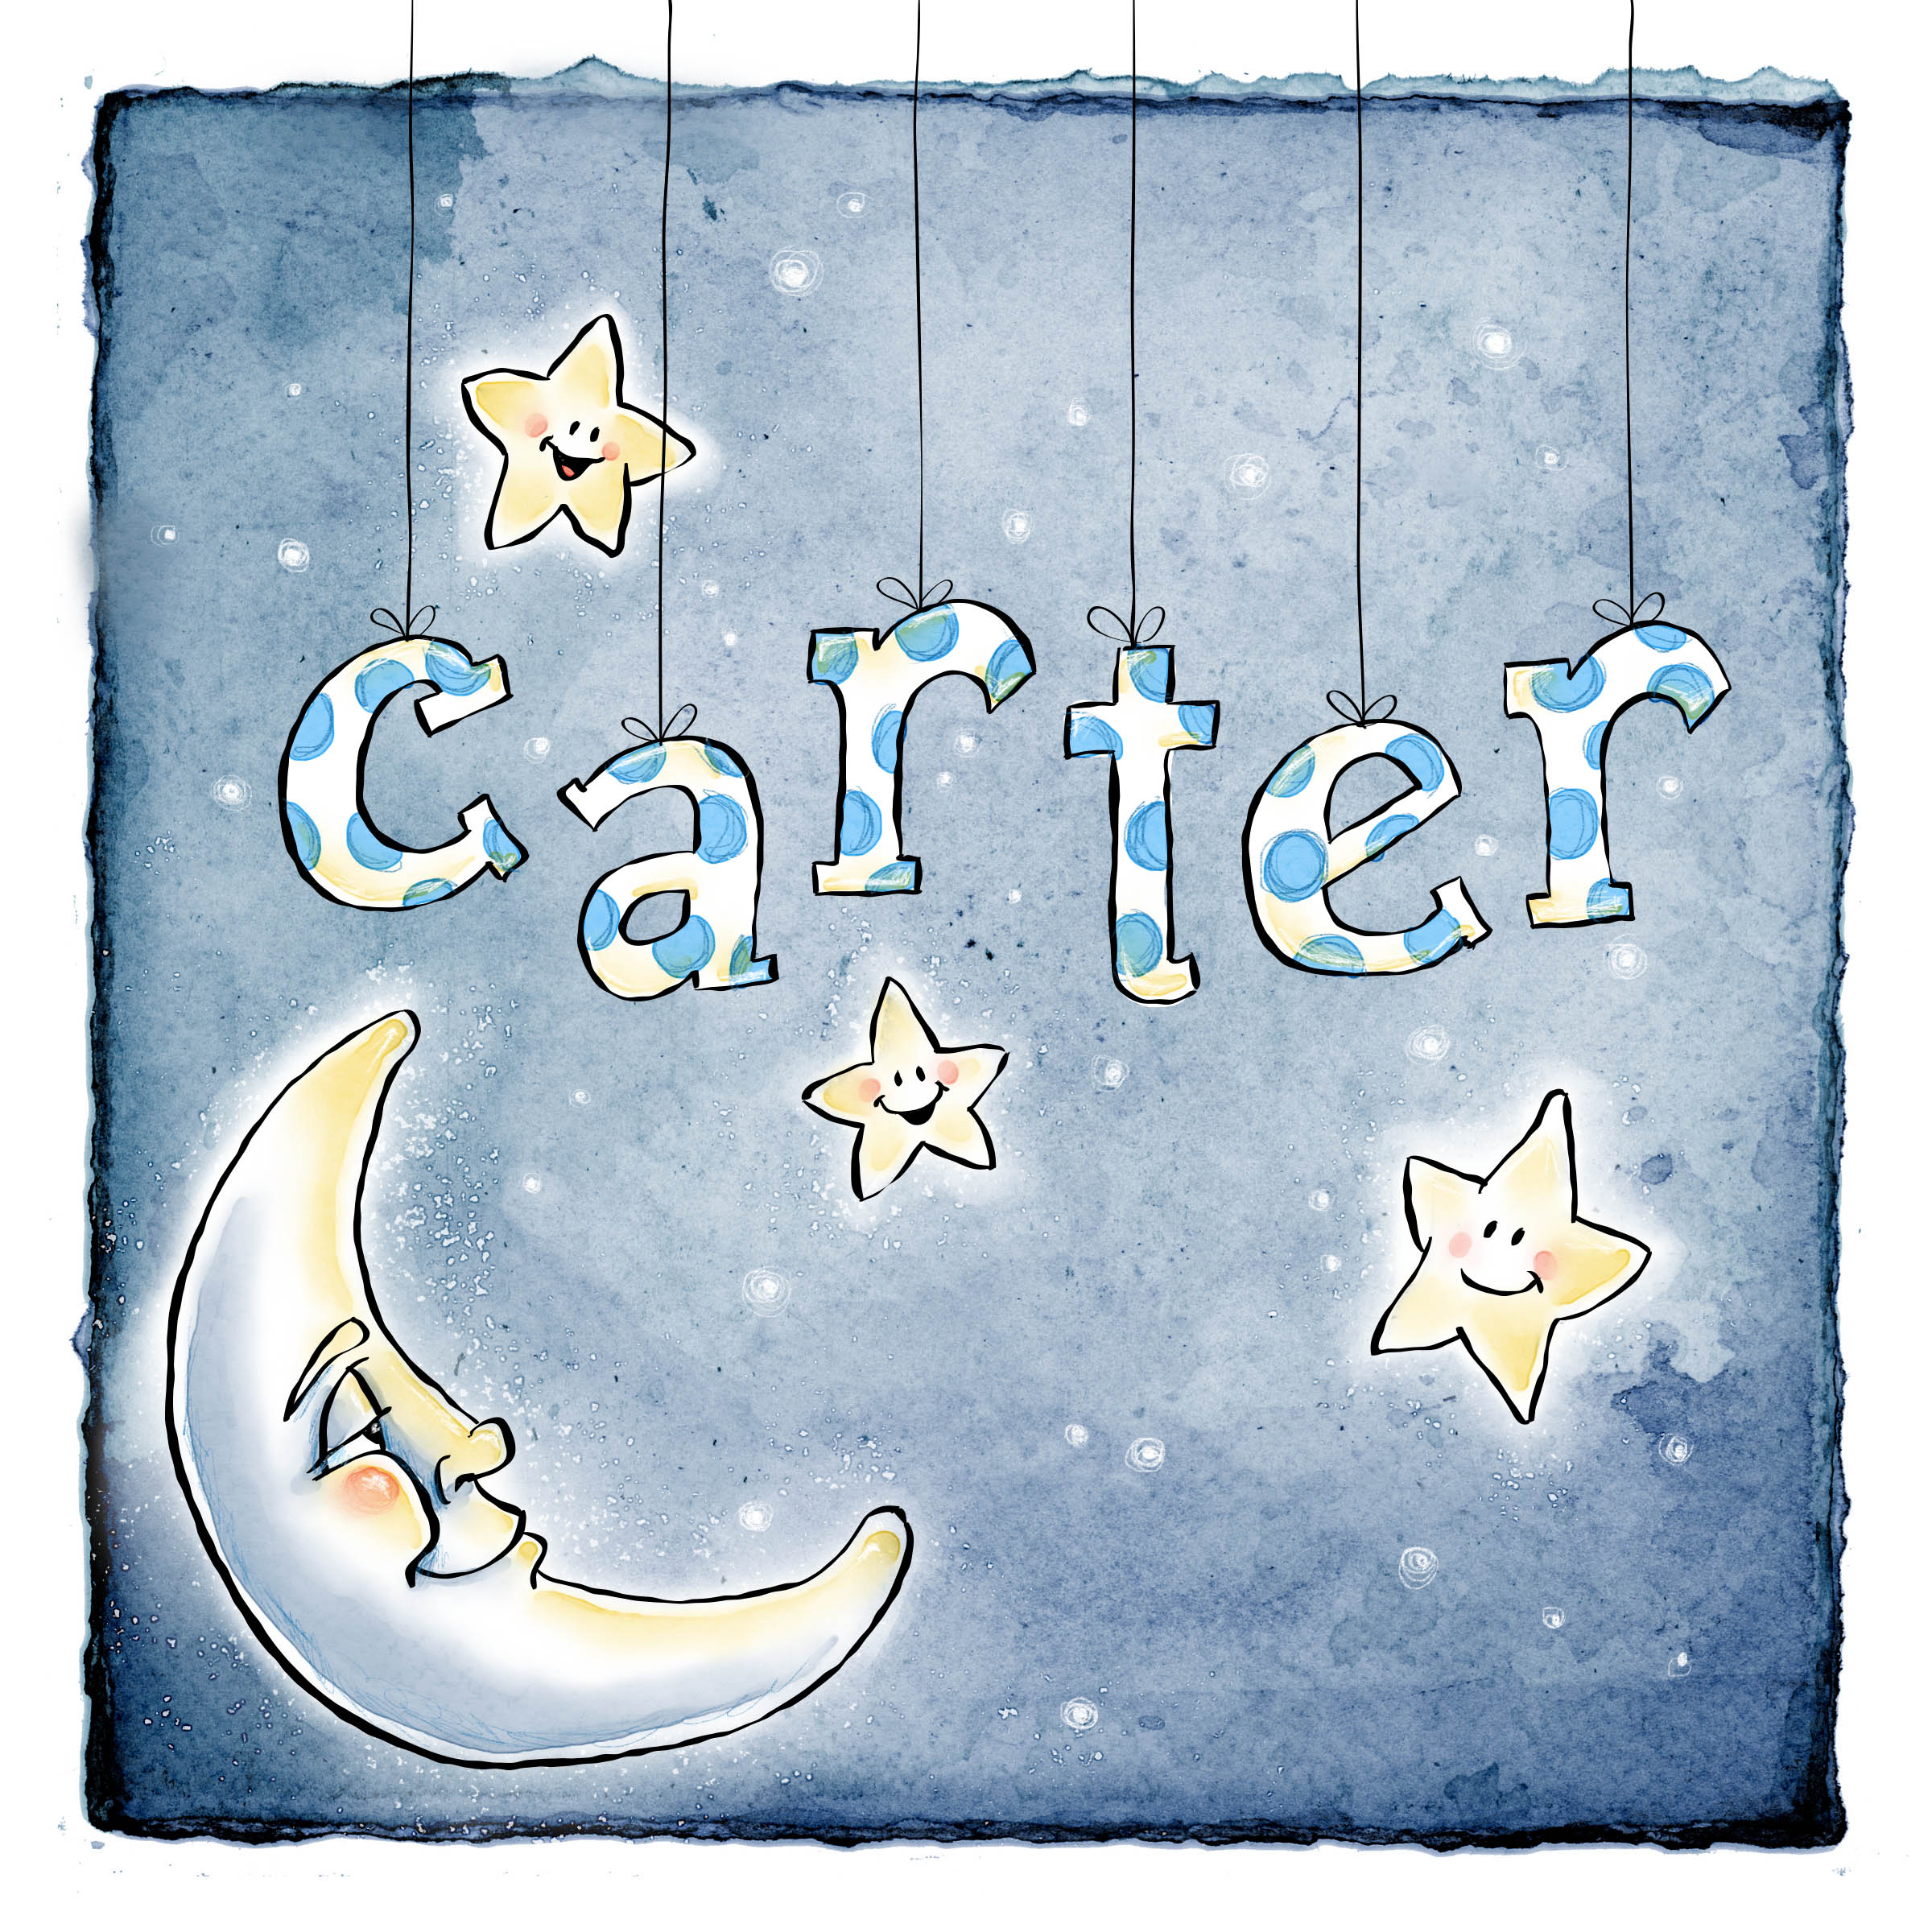 Carter_StaryNight.jpg